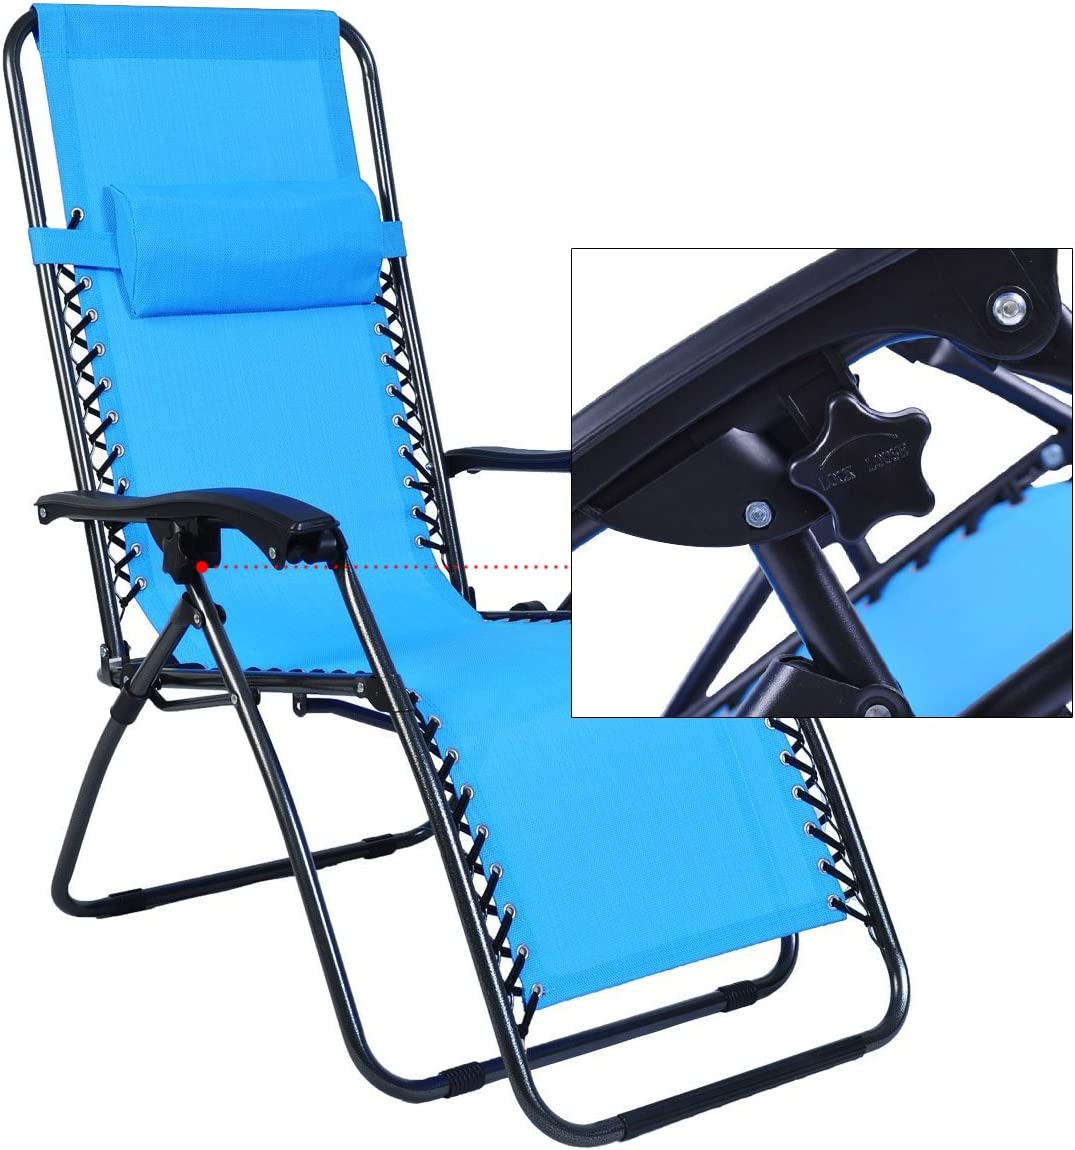 Odaof Zero Gravity Chair Light Blue Set of 2